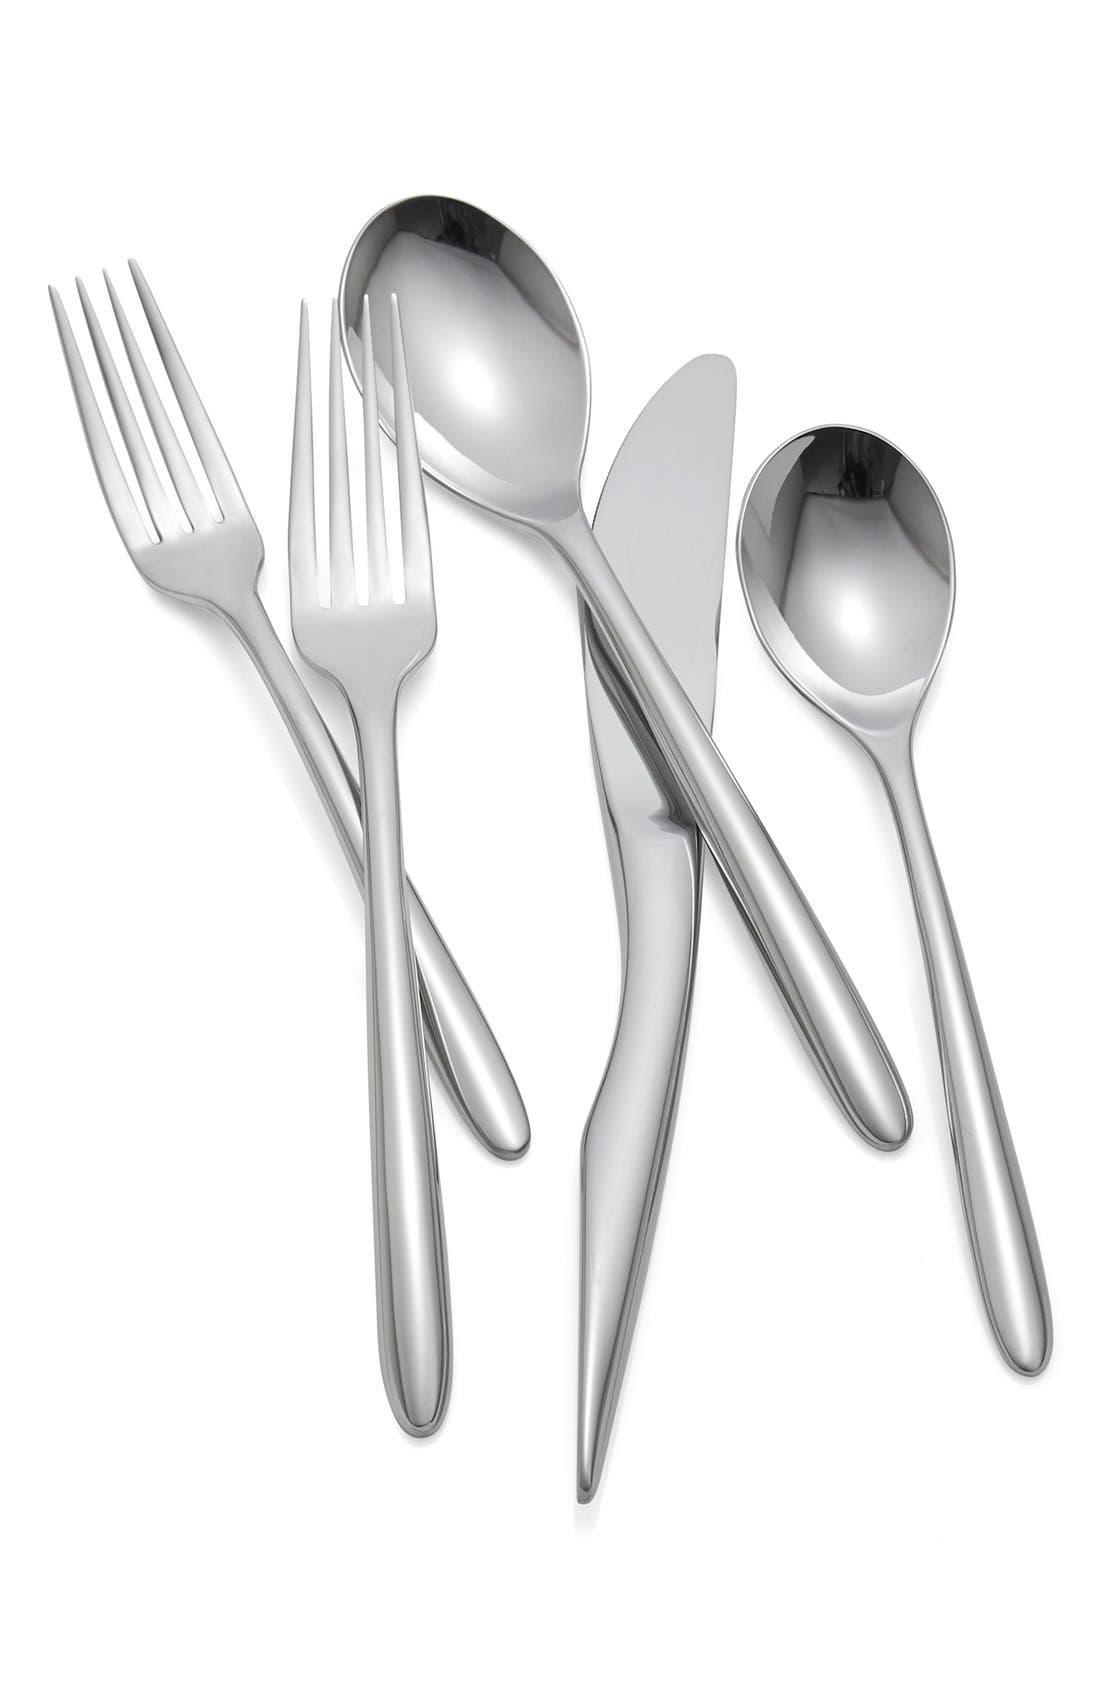 'Dune' 5-Piece Stainless Steel Table Setting,                             Main thumbnail 1, color,                             Silver